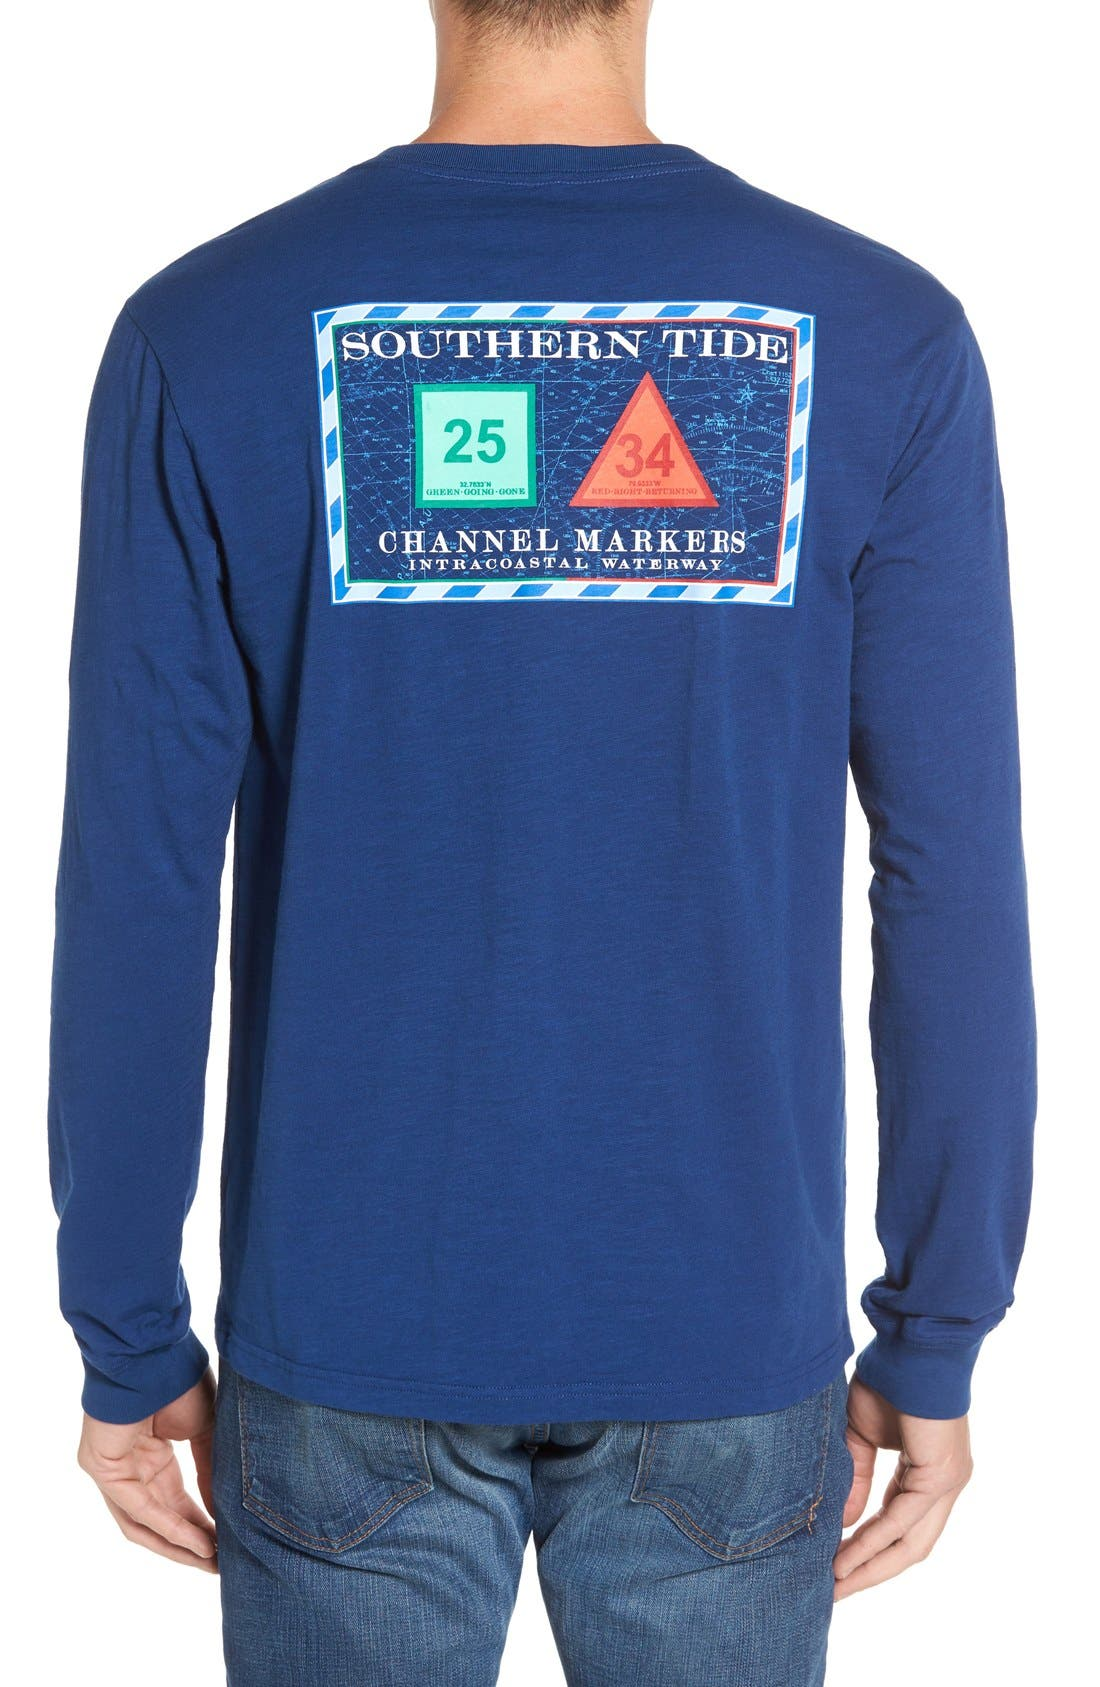 Alternate Image 1 Selected - Southern Tide 'Channel Marker' Graphic Pocket Long Sleeve T-Shirt